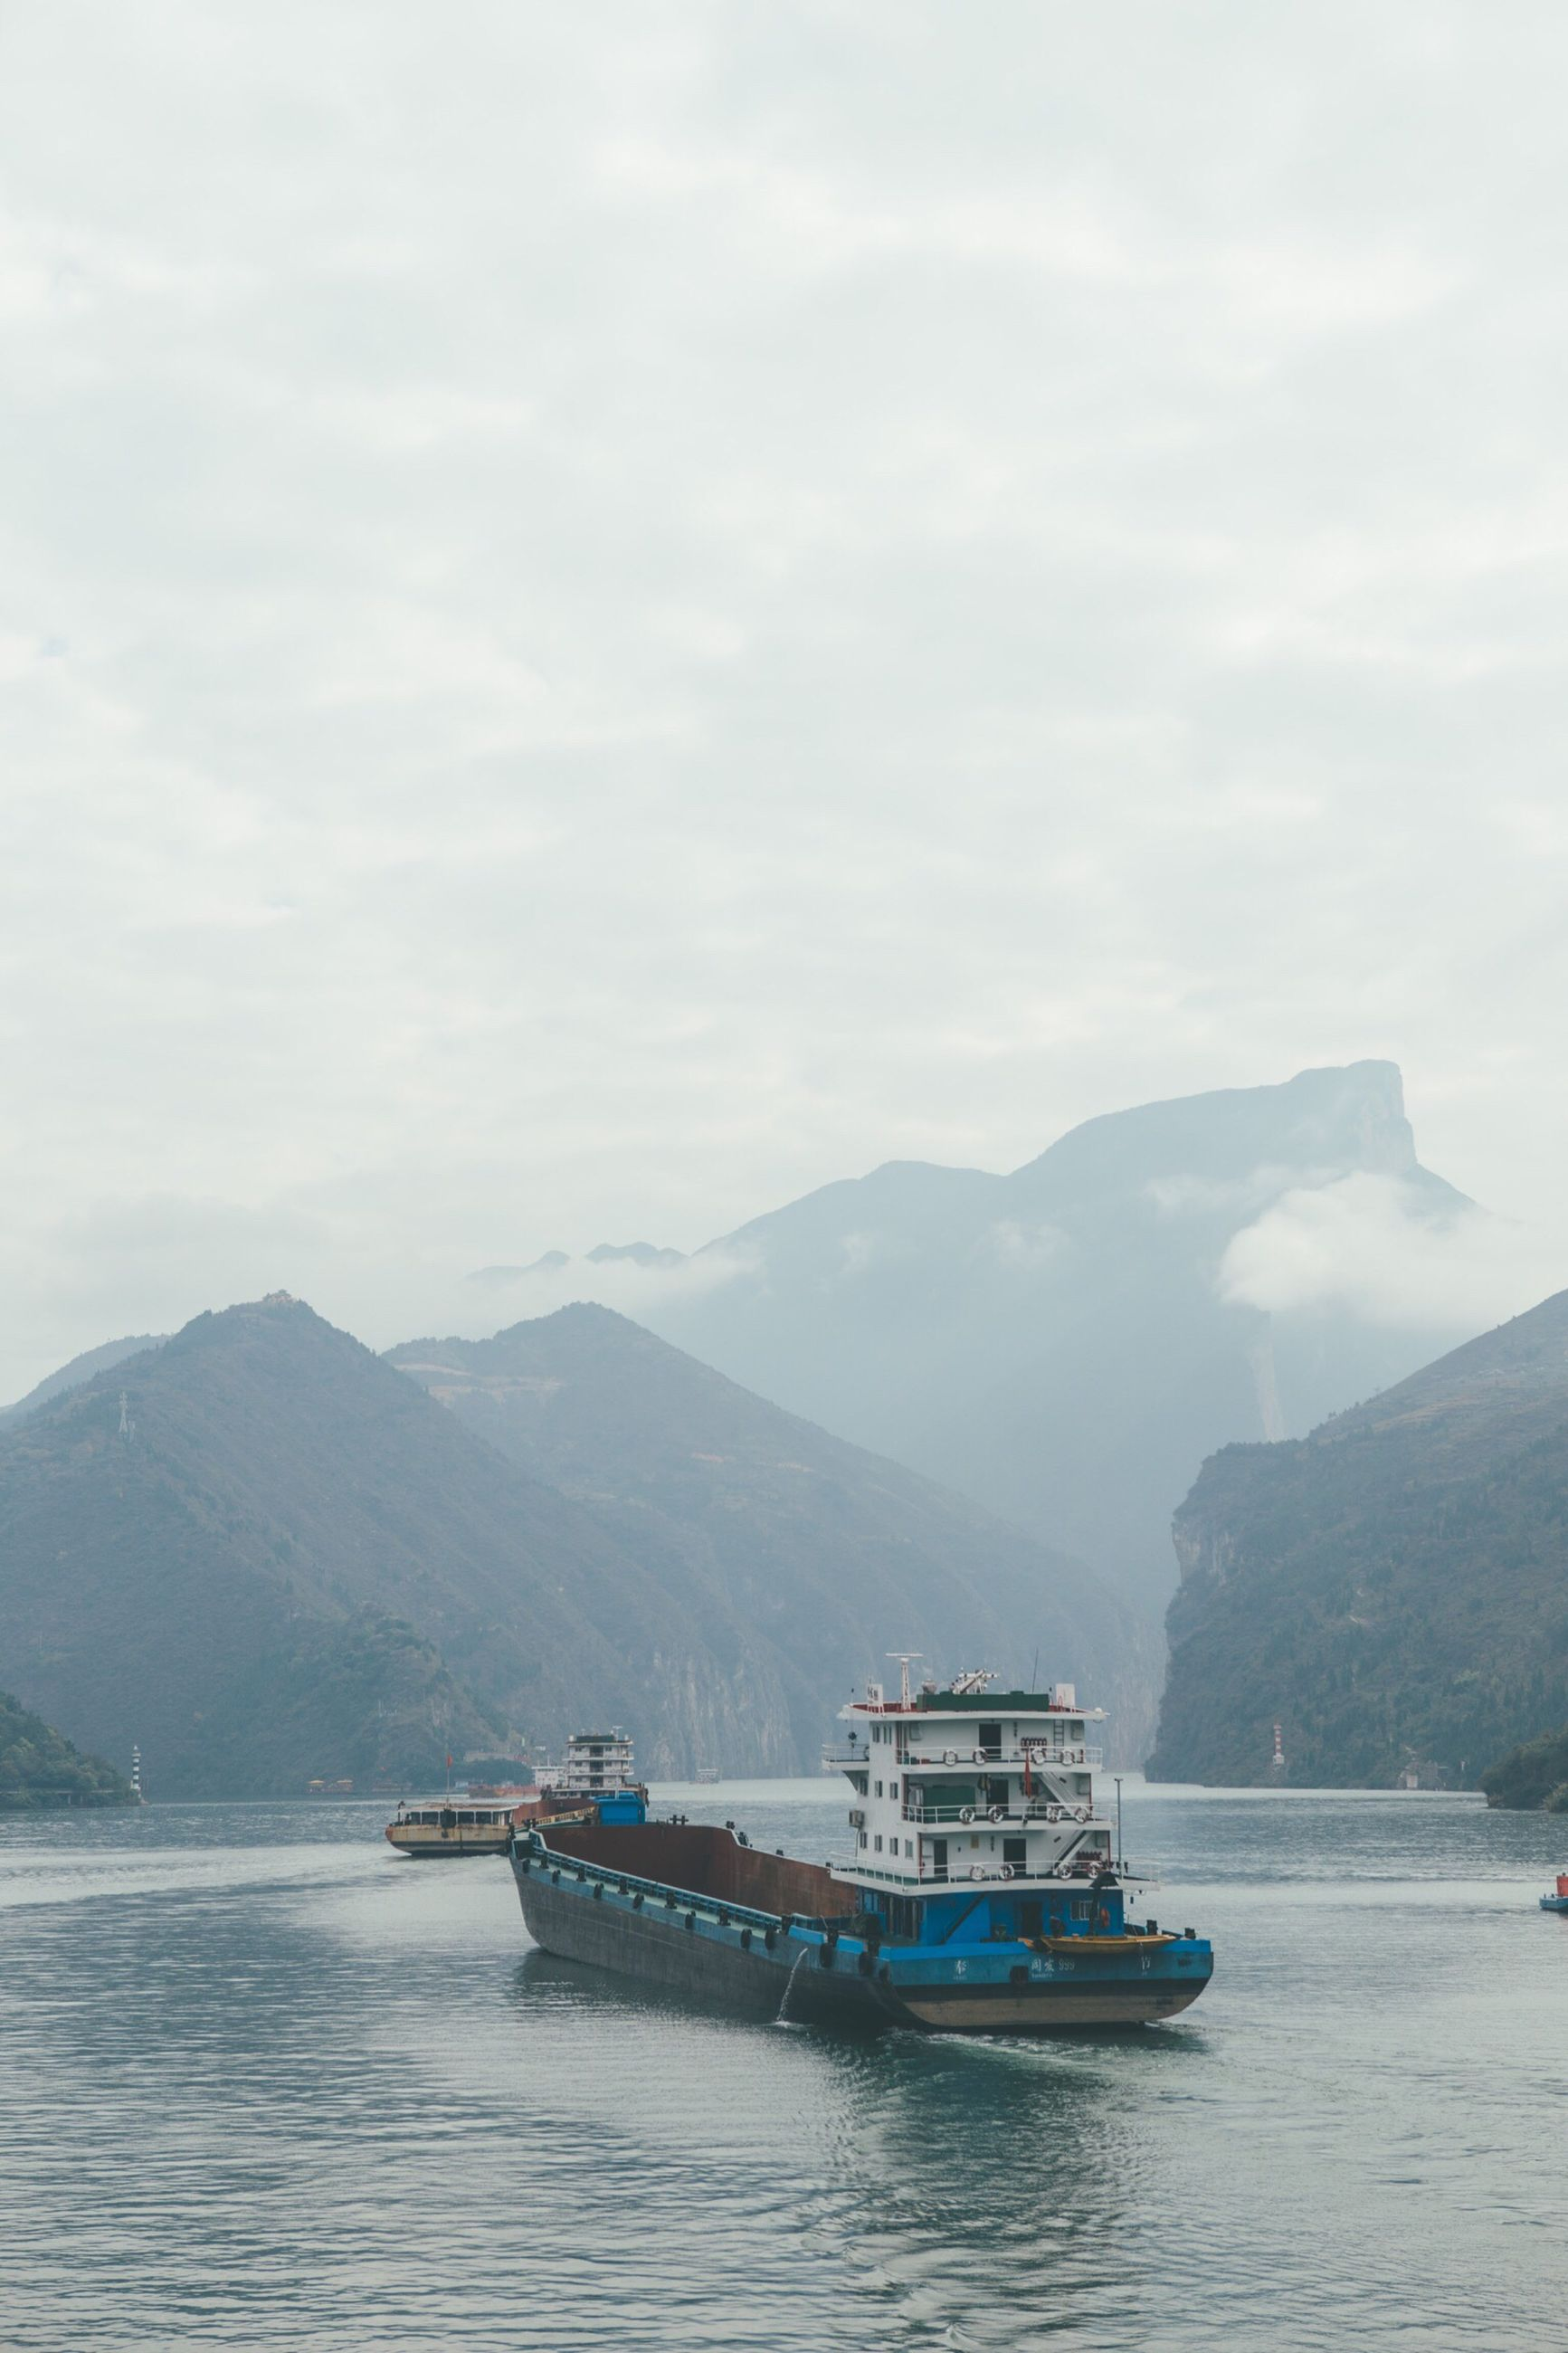 mountain, nautical vessel, transportation, waterfront, water, mountain range, mode of transport, boat, travel, sailing, cloud - sky, sky, tourism, scenics, beauty in nature, passenger craft, nature, journey, travel destinations, tranquil scene, tranquility, fog, ferry, sea, mountain peak, day, ship, outdoors, famous place, non-urban scene, no people, vacations